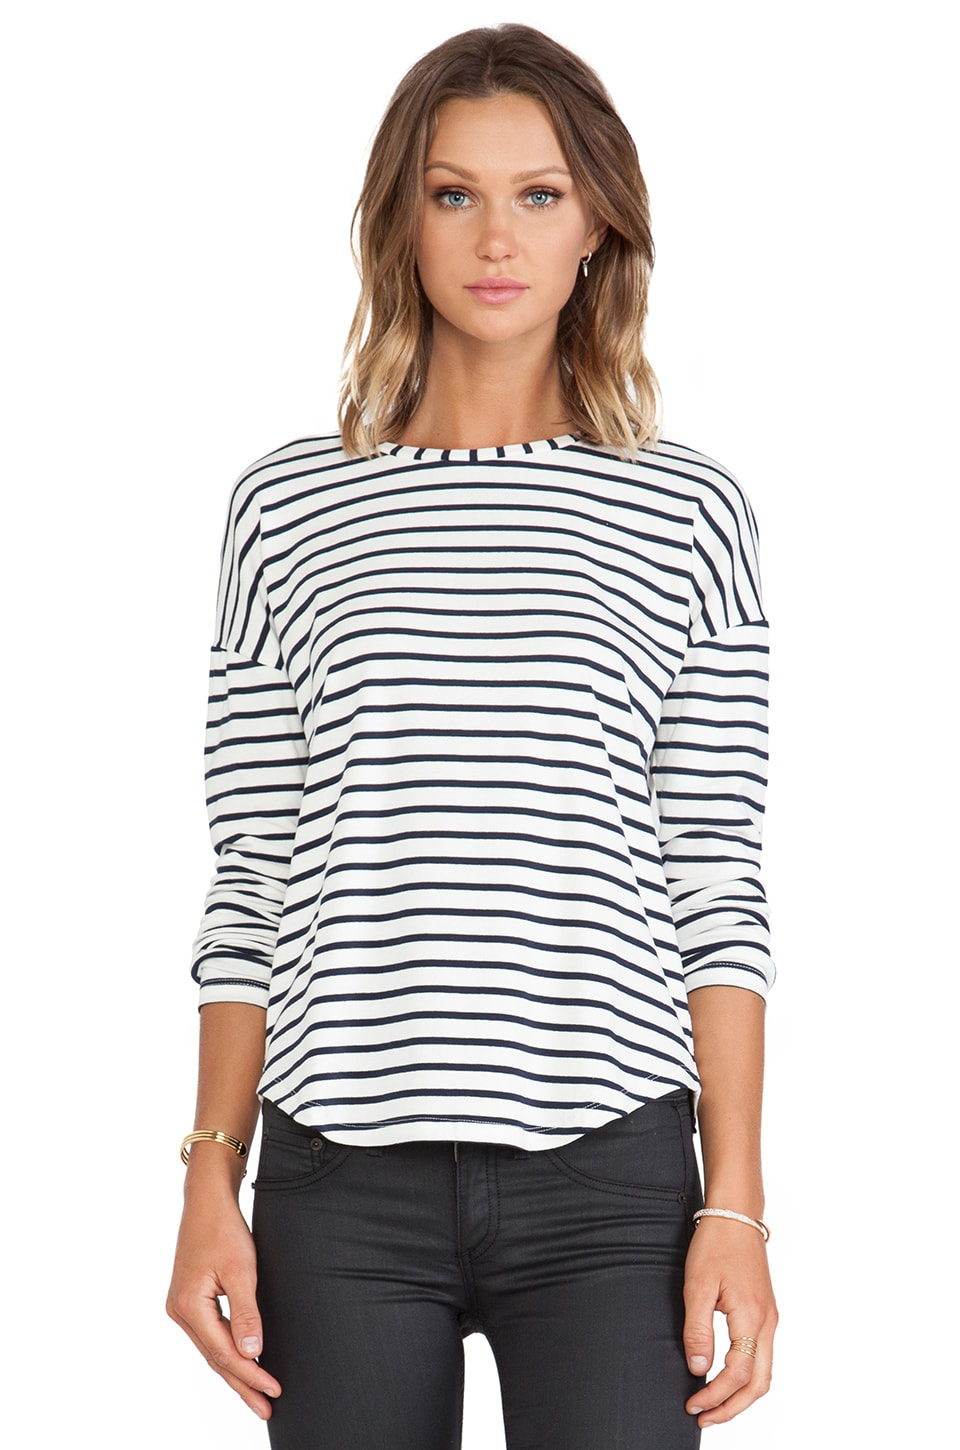 Capulet Long Sleeve Tee in Navy Stripe